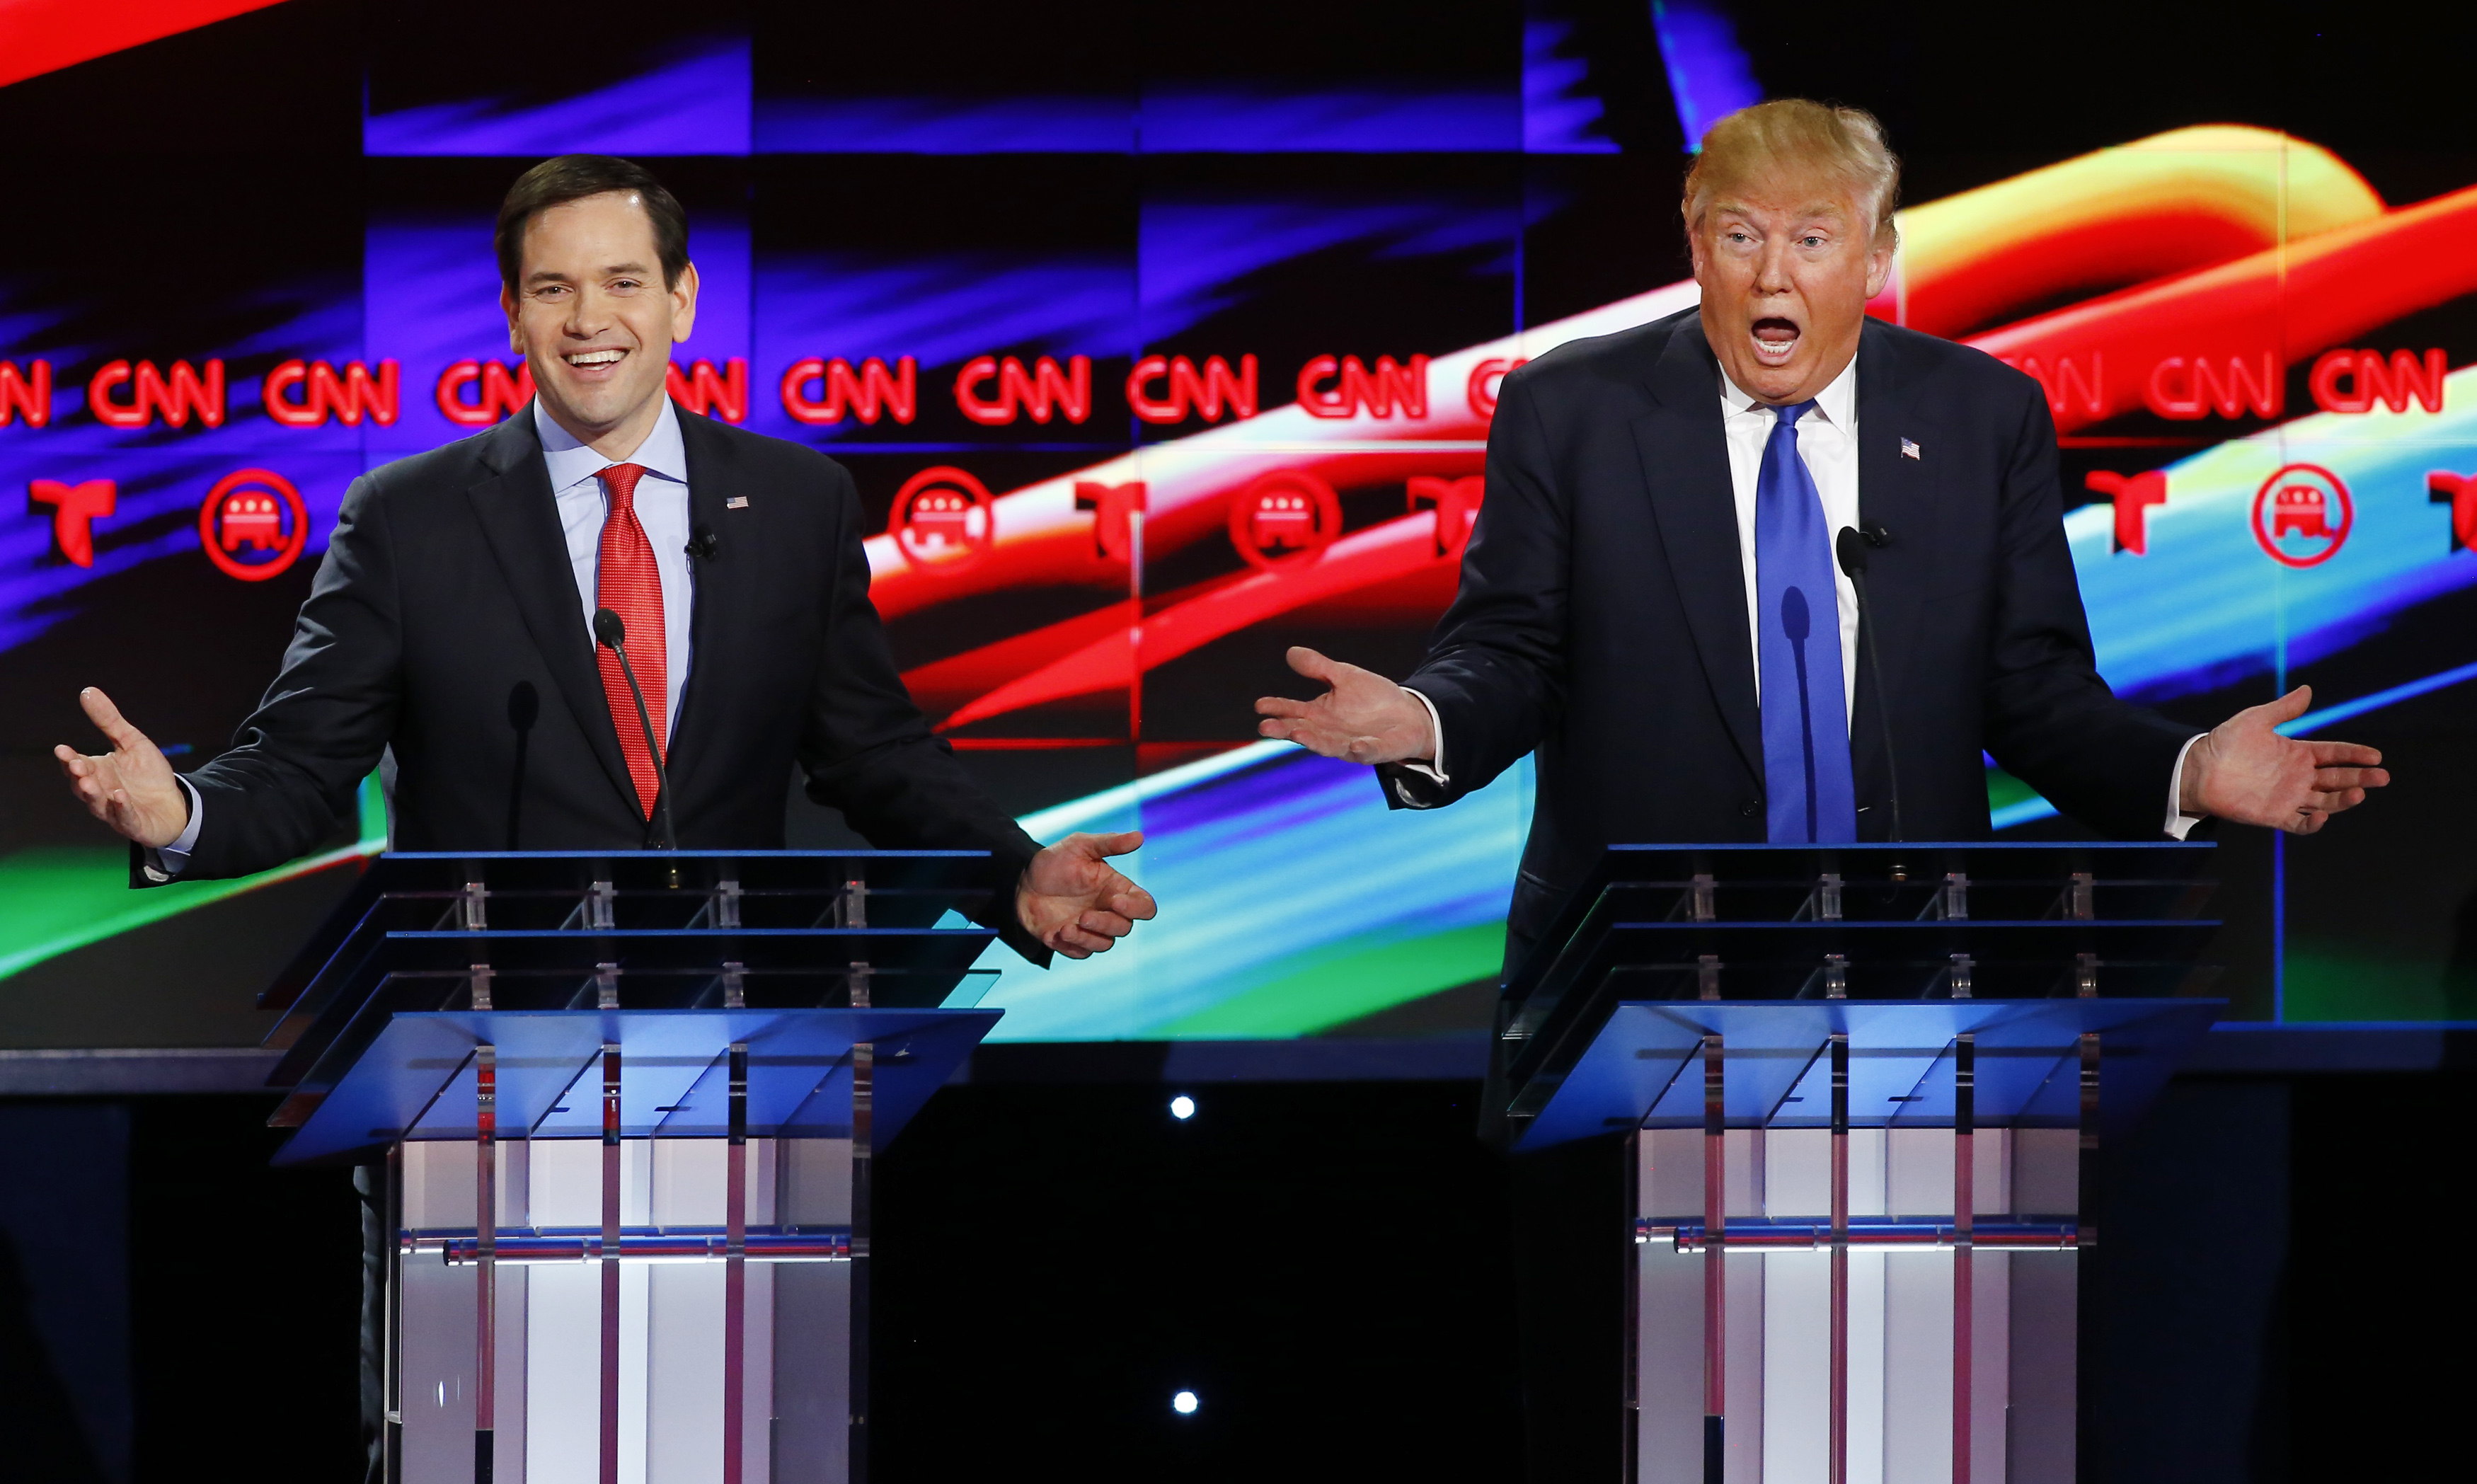 Republican U.S. presidential candidates Rubio and Trump react to each other as they discuss an issue during the debate sponsored by CNN for the 2016 Republican U.S. presidential candidates in Houston